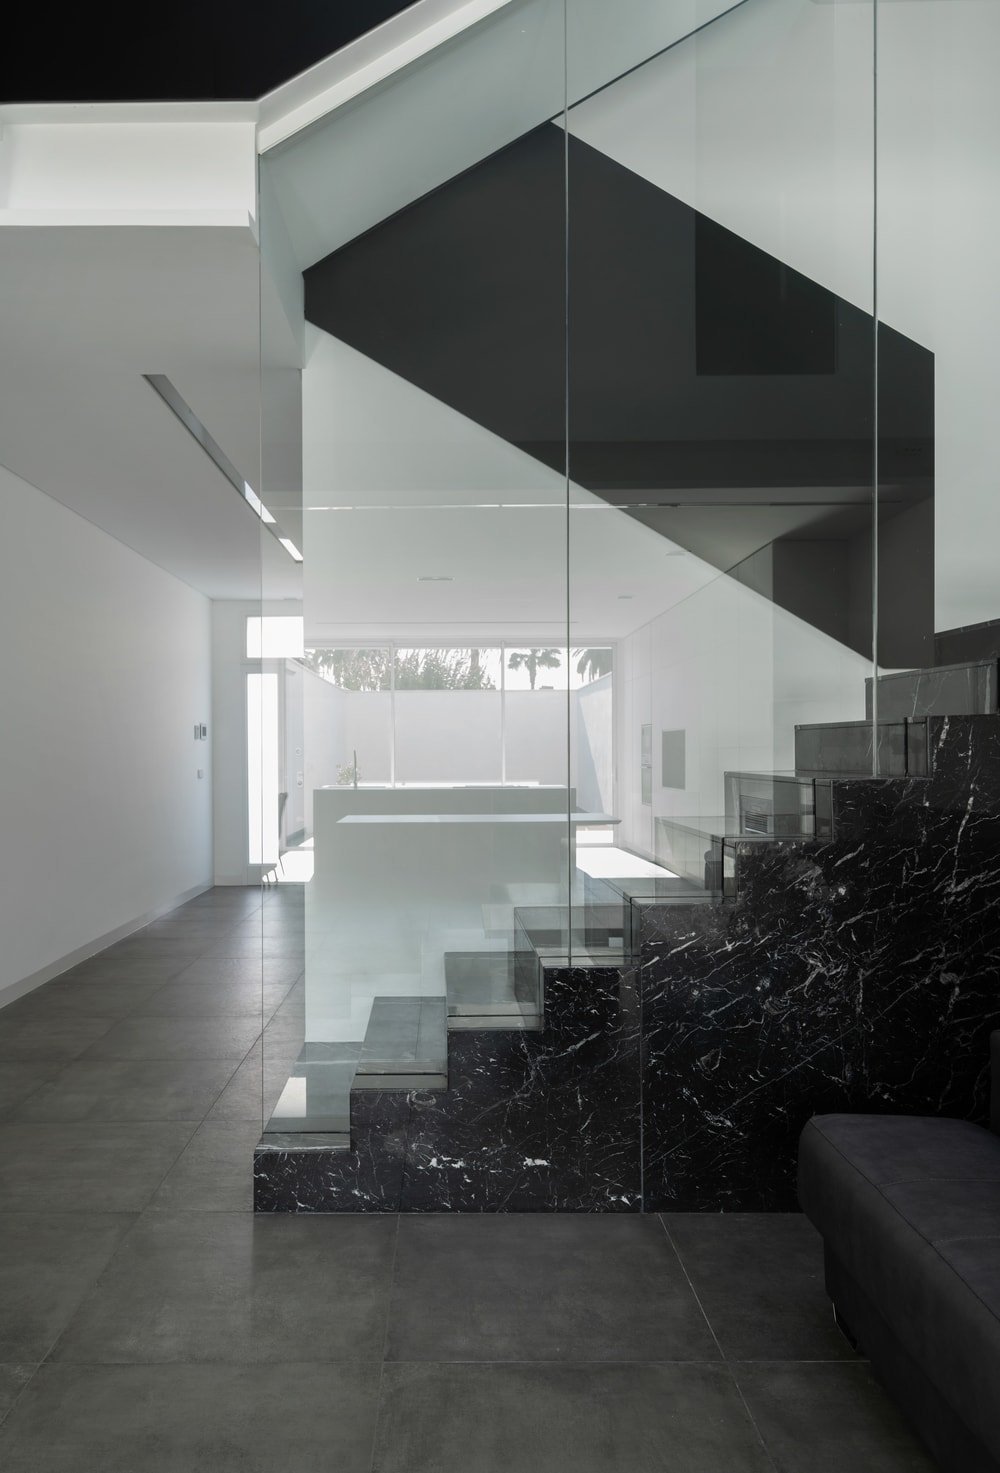 This is a closer look at the staircase that has black marble steps and a large glass wall that gives it a unique look.